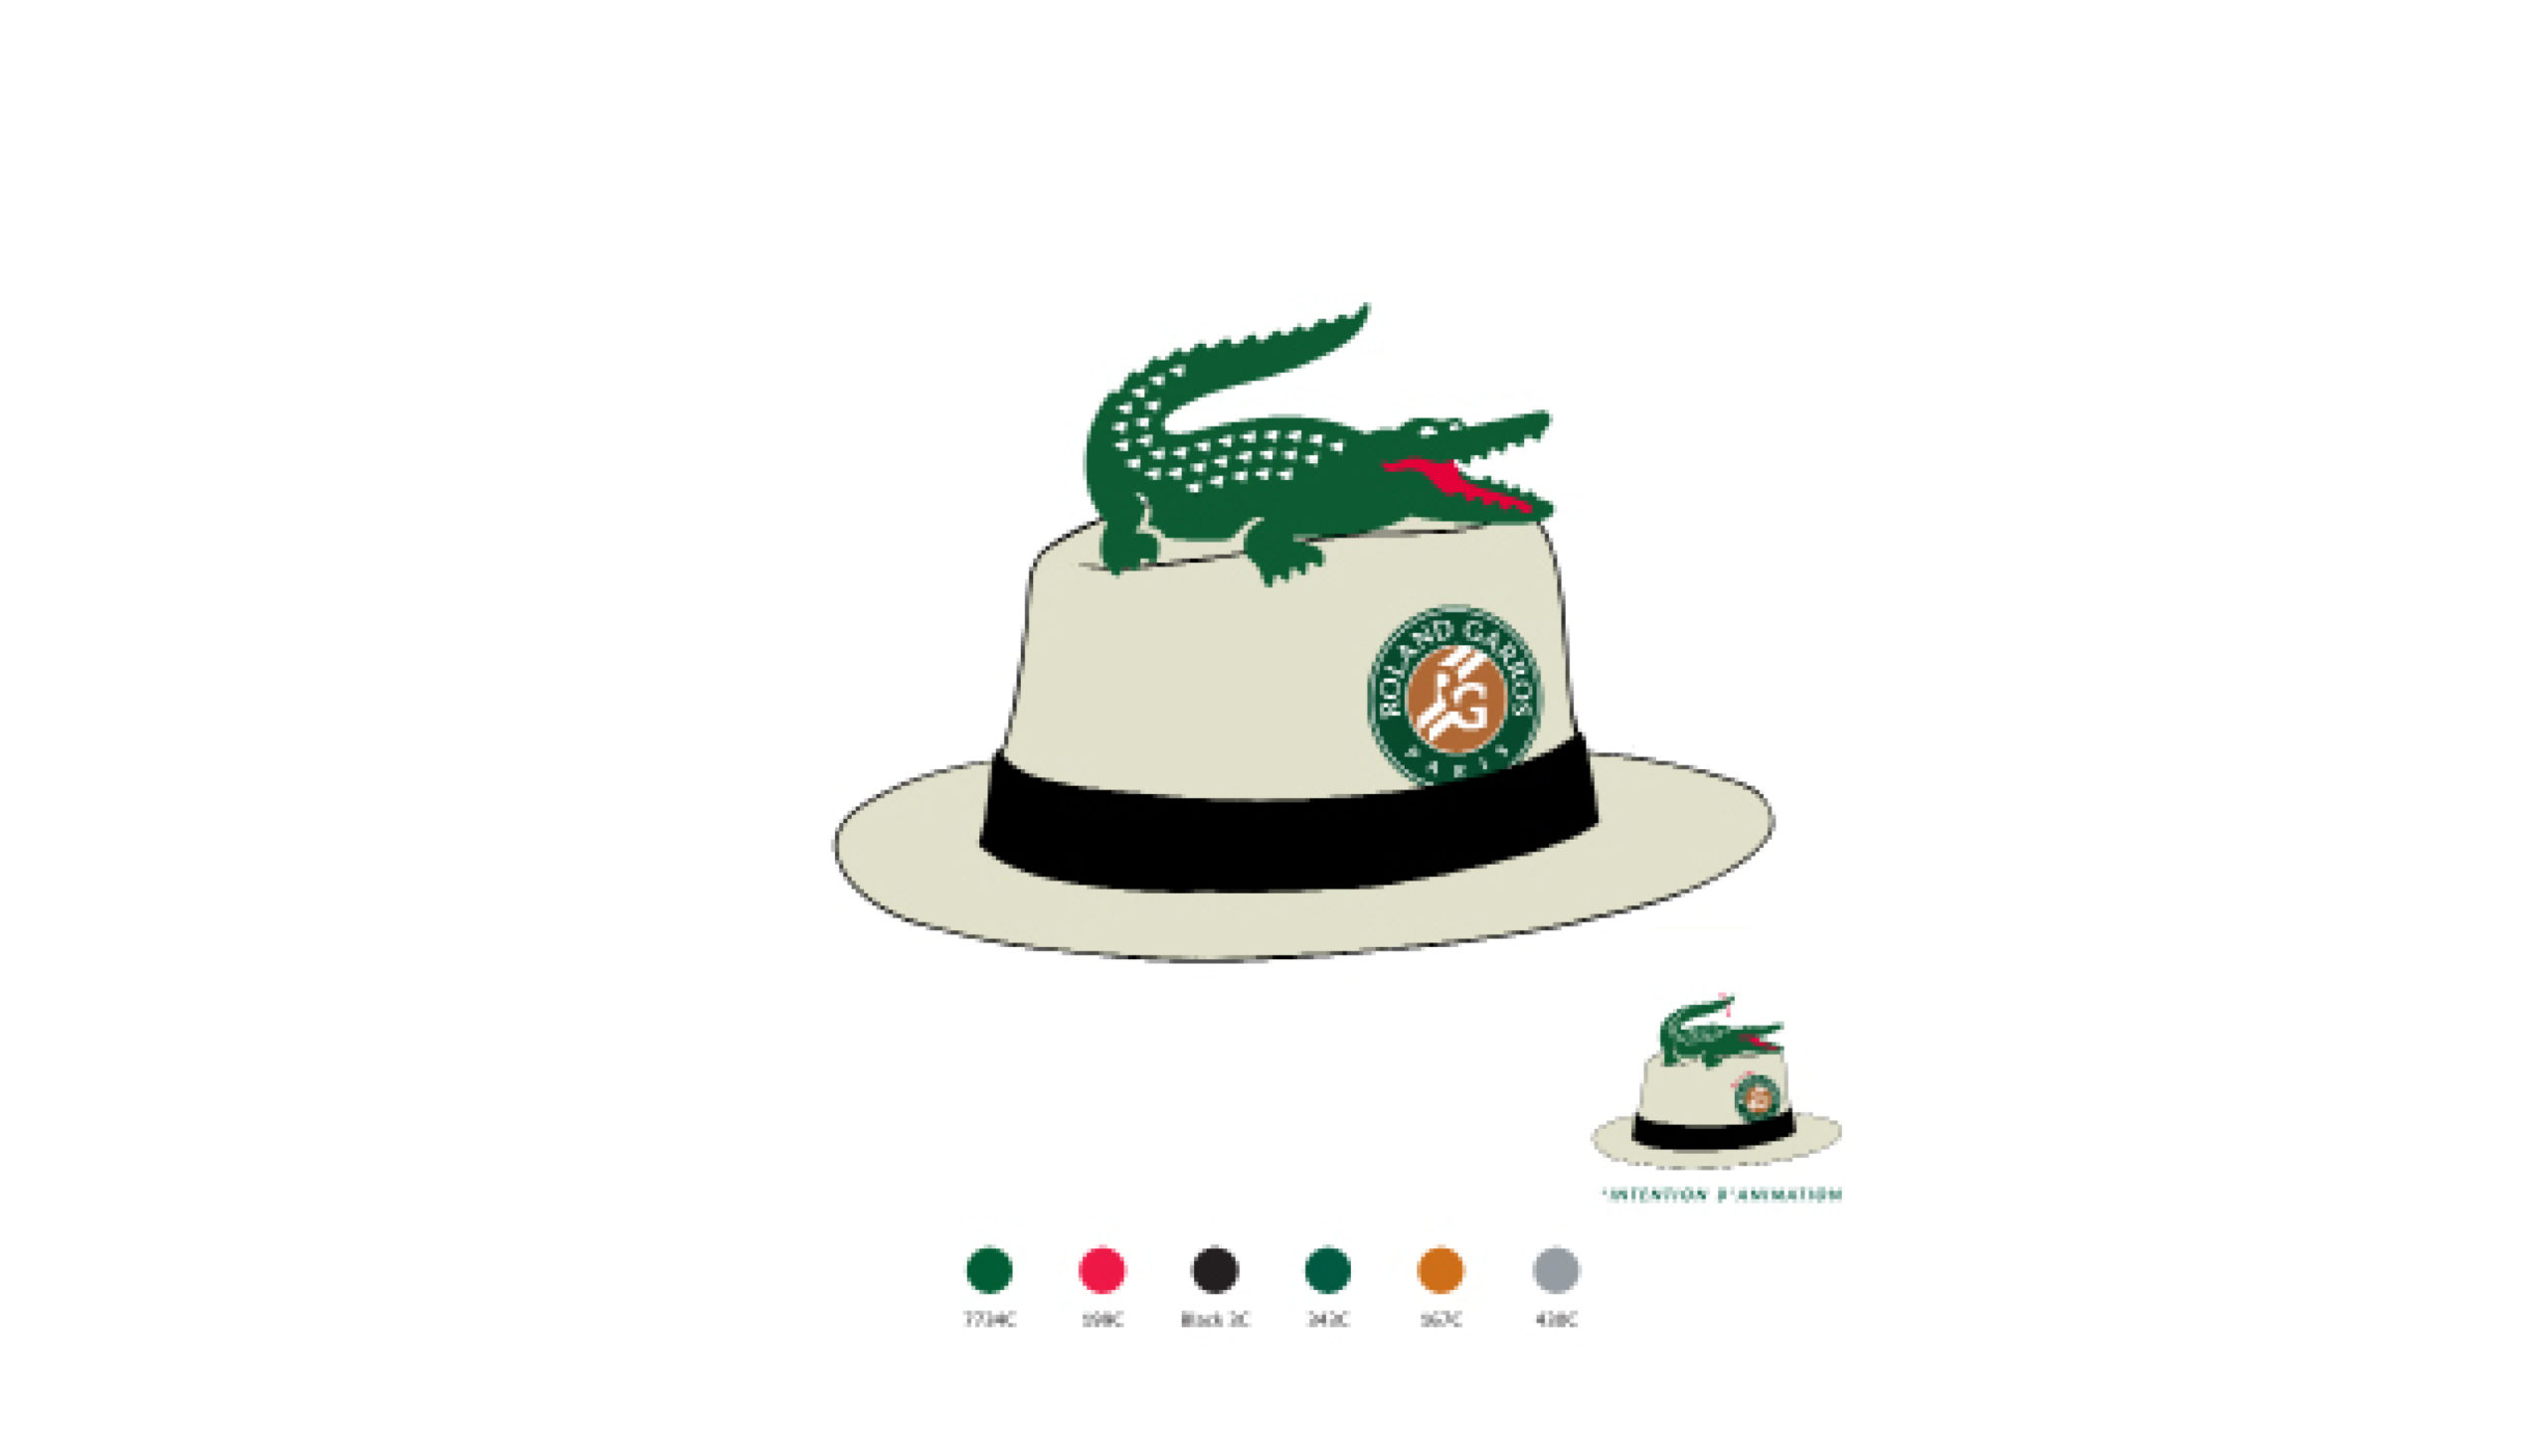 LACOSTE_STICKERS_HOBBYNOTE_R_047